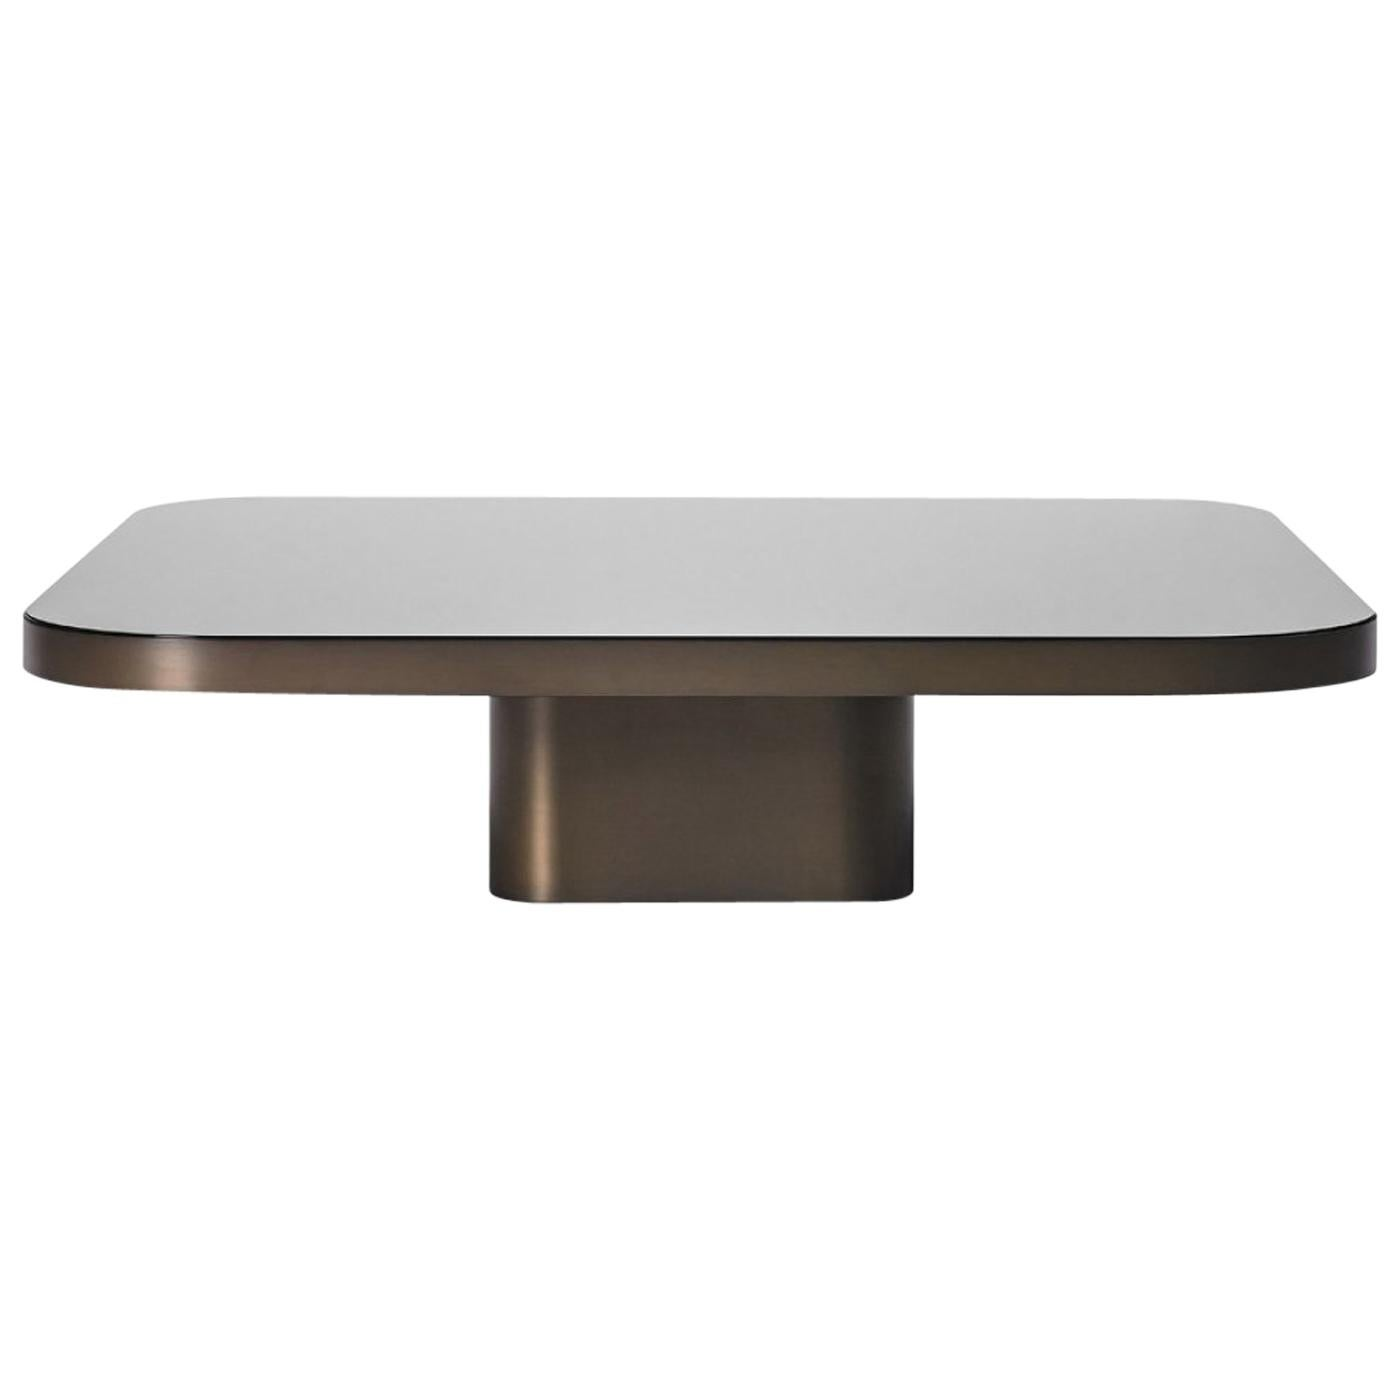 ClassiCon Bow Coffee Table No. 5 by Guilherme Torres